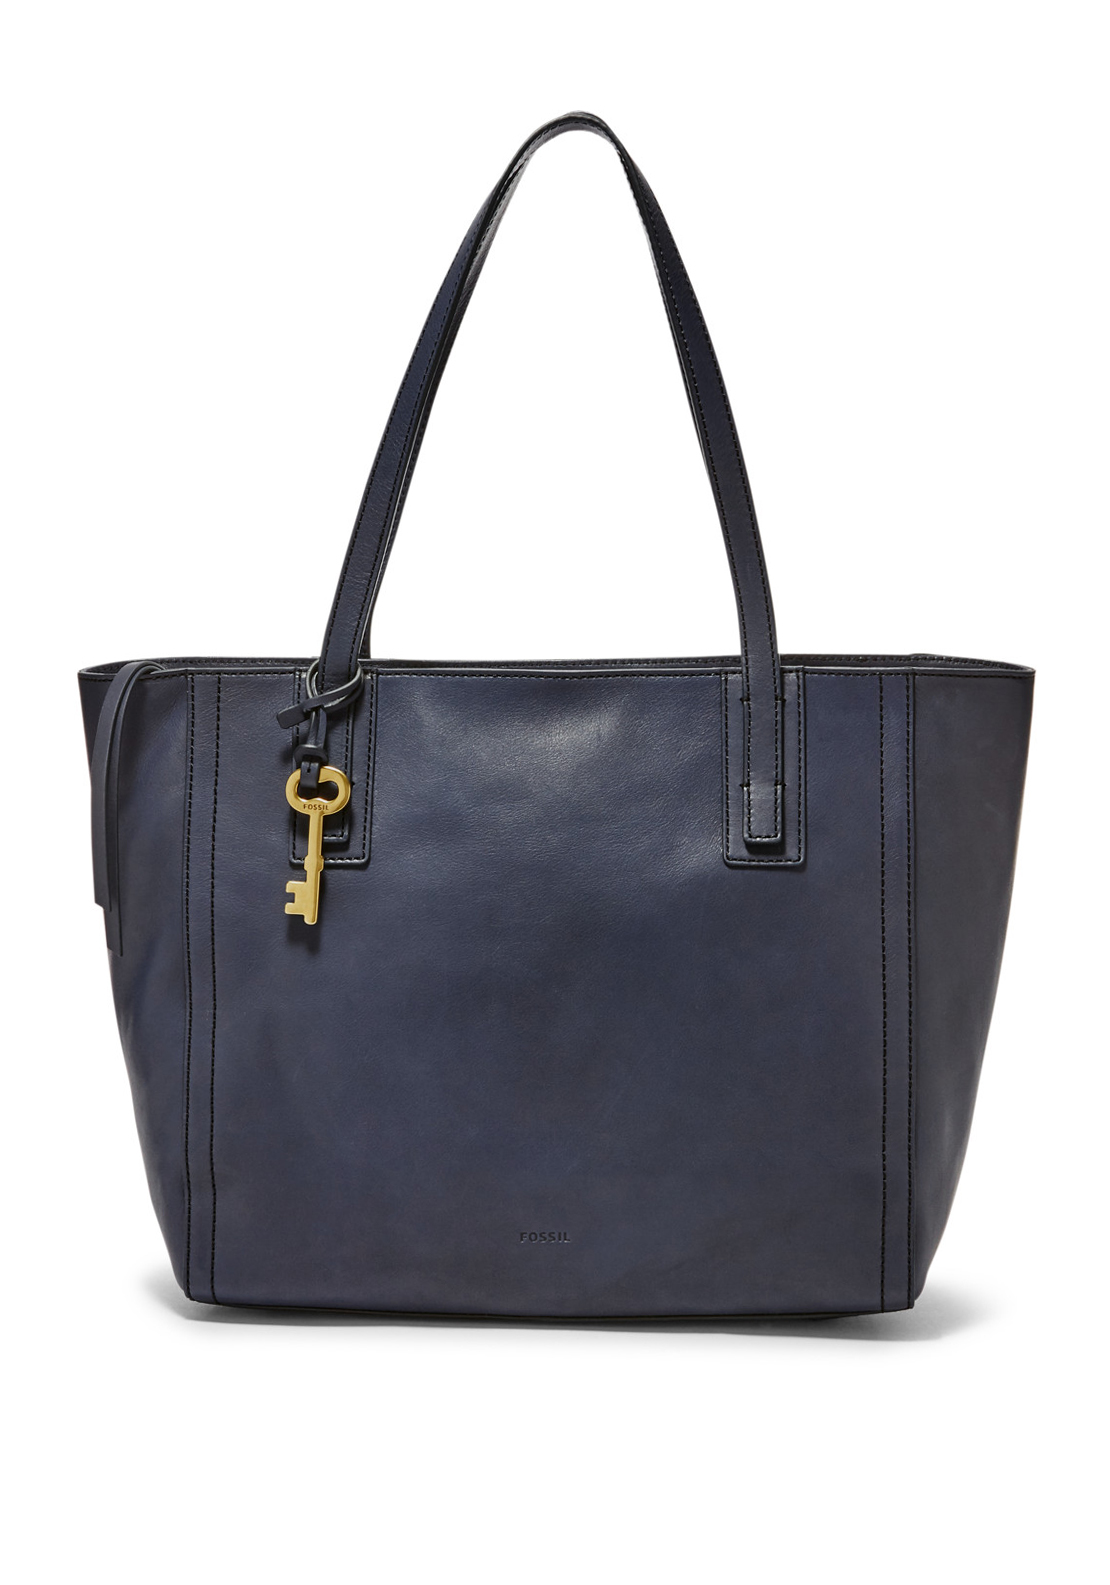 Fossil Emma Leather Tote Bag, Midnight Navy